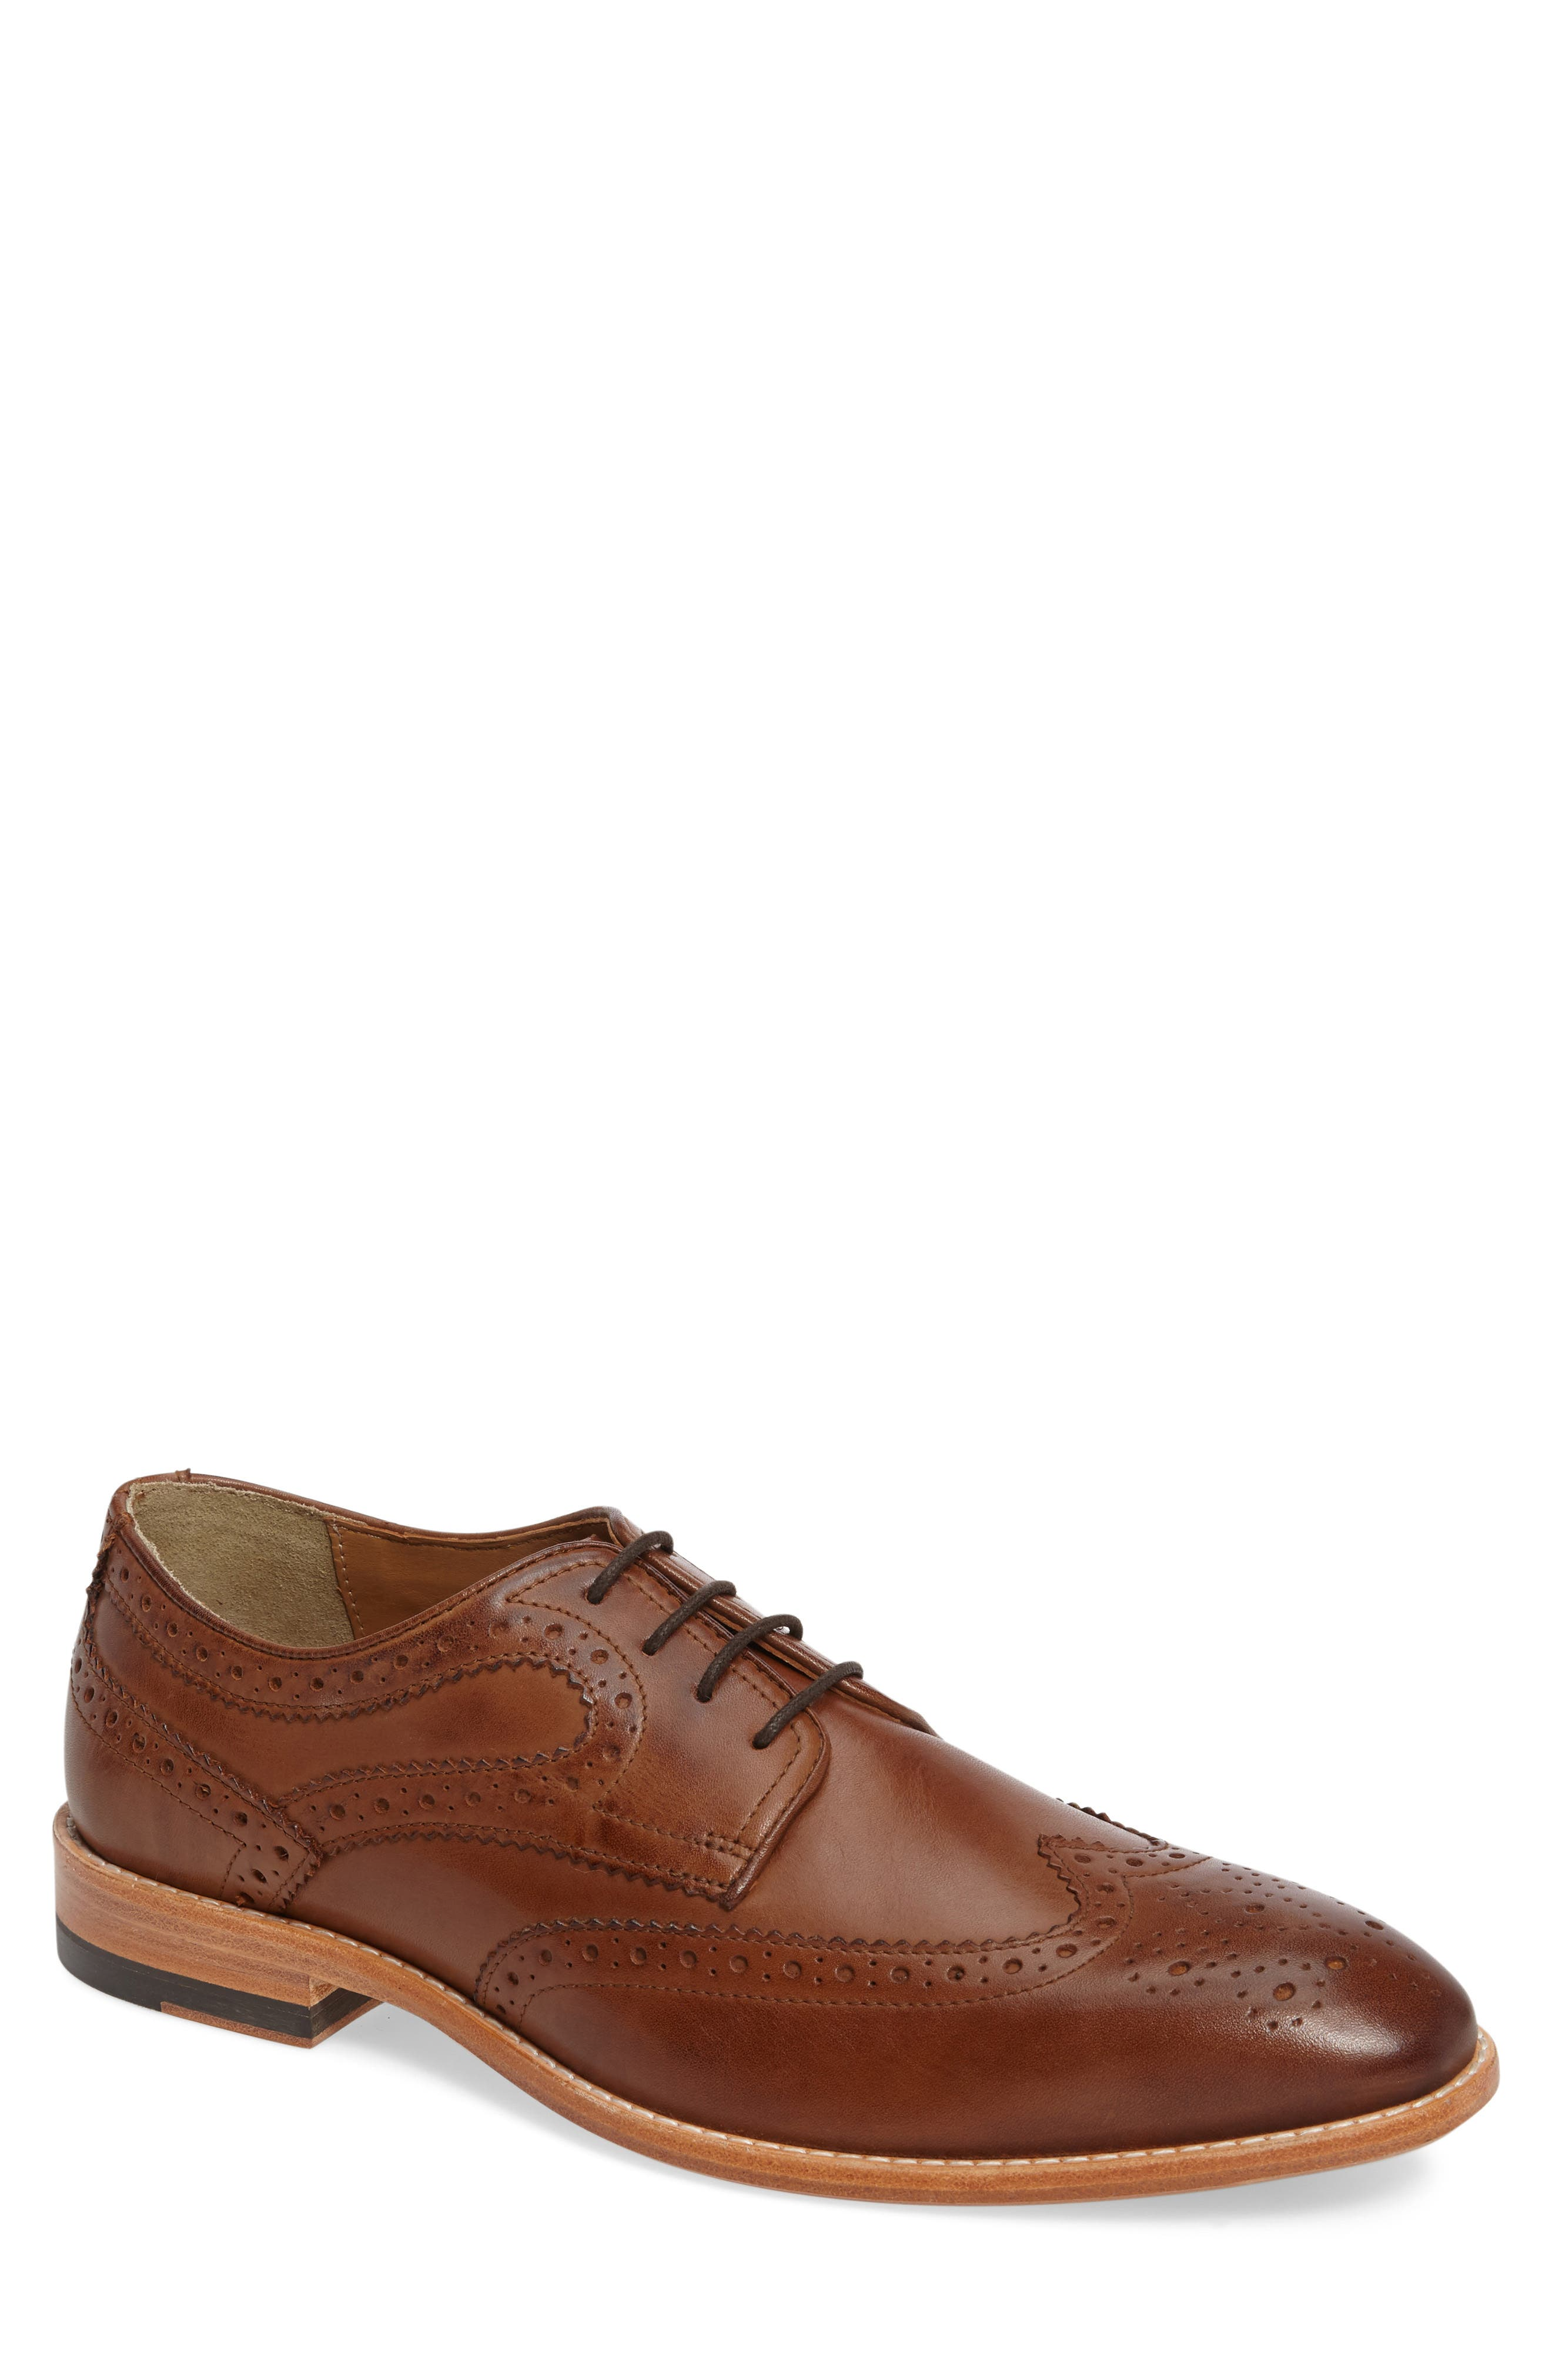 Vance Wingtip Oxford,                             Main thumbnail 1, color,                             Tan Leather